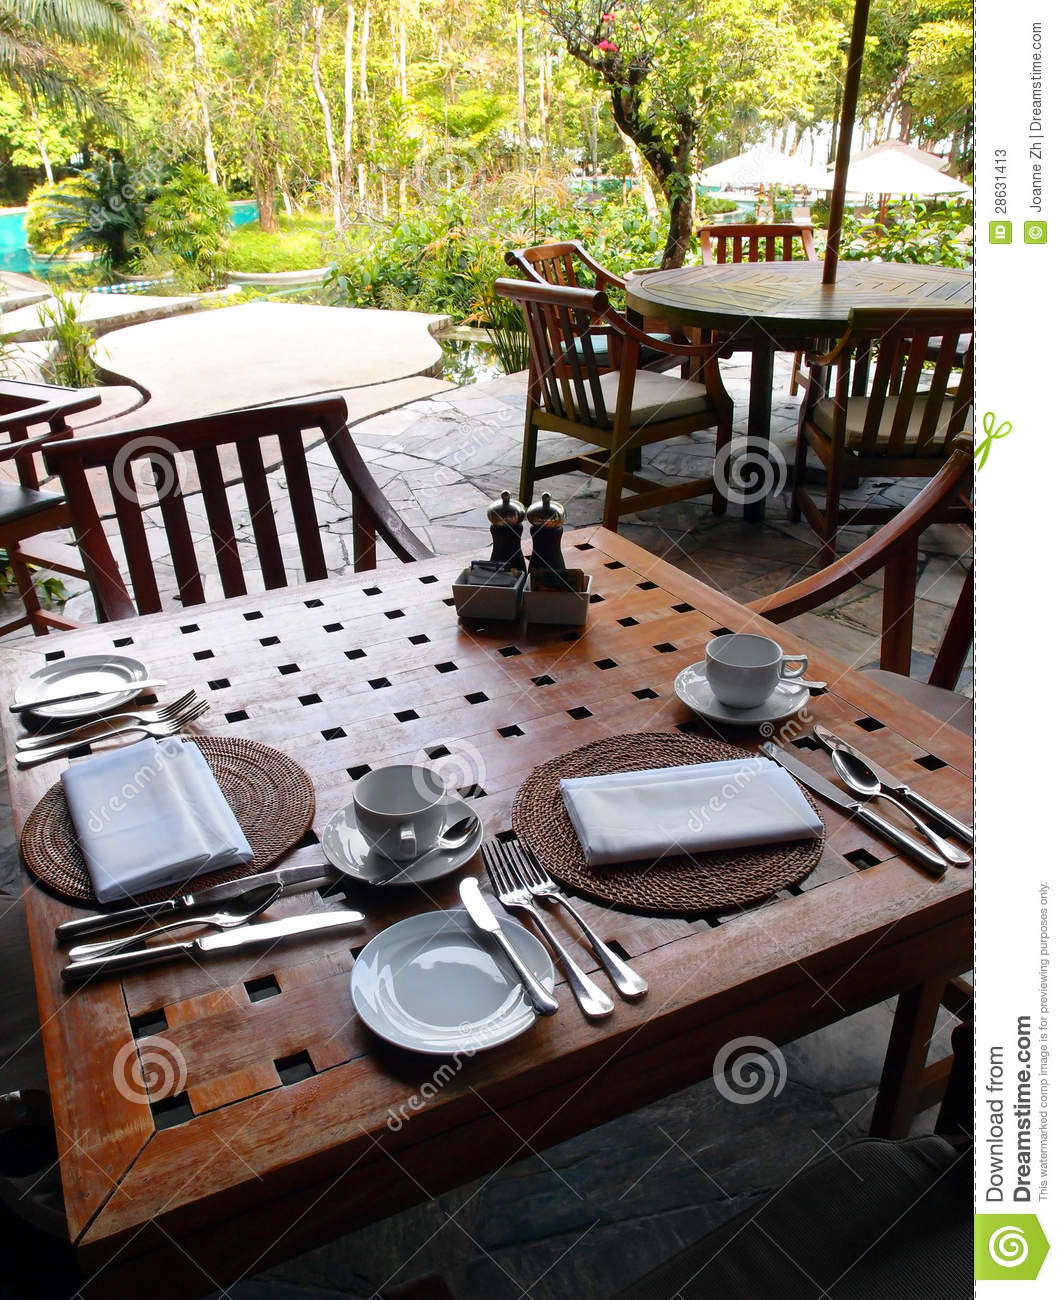 Outdoor dining restaurant table cutlery settings stock Outdoor dinner table setting